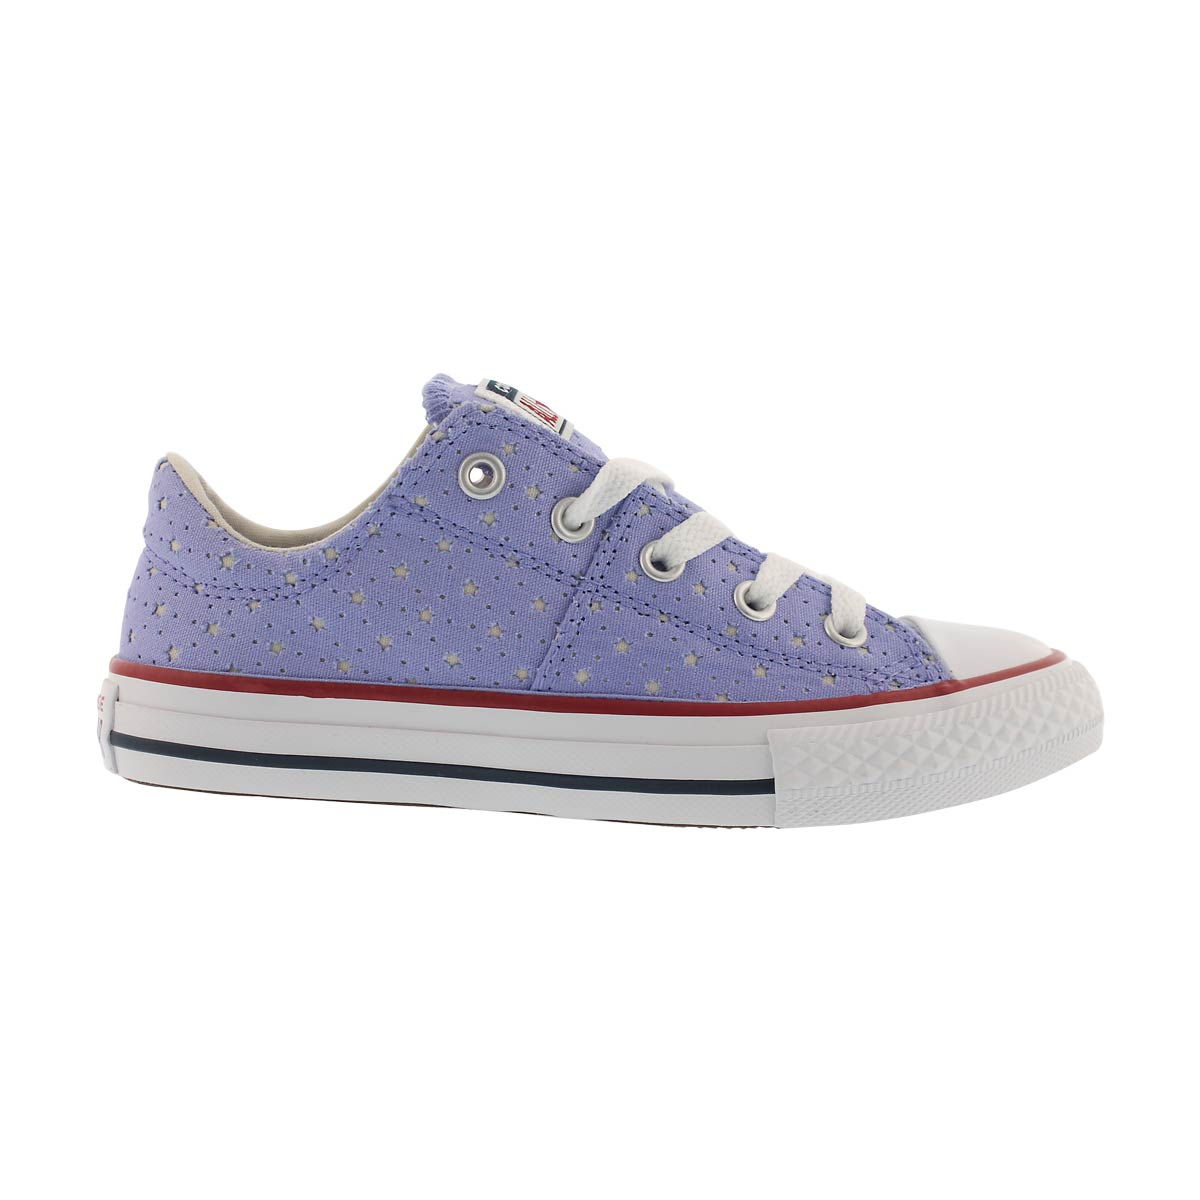 Grls CTAS Madison twilight pulse sneaker